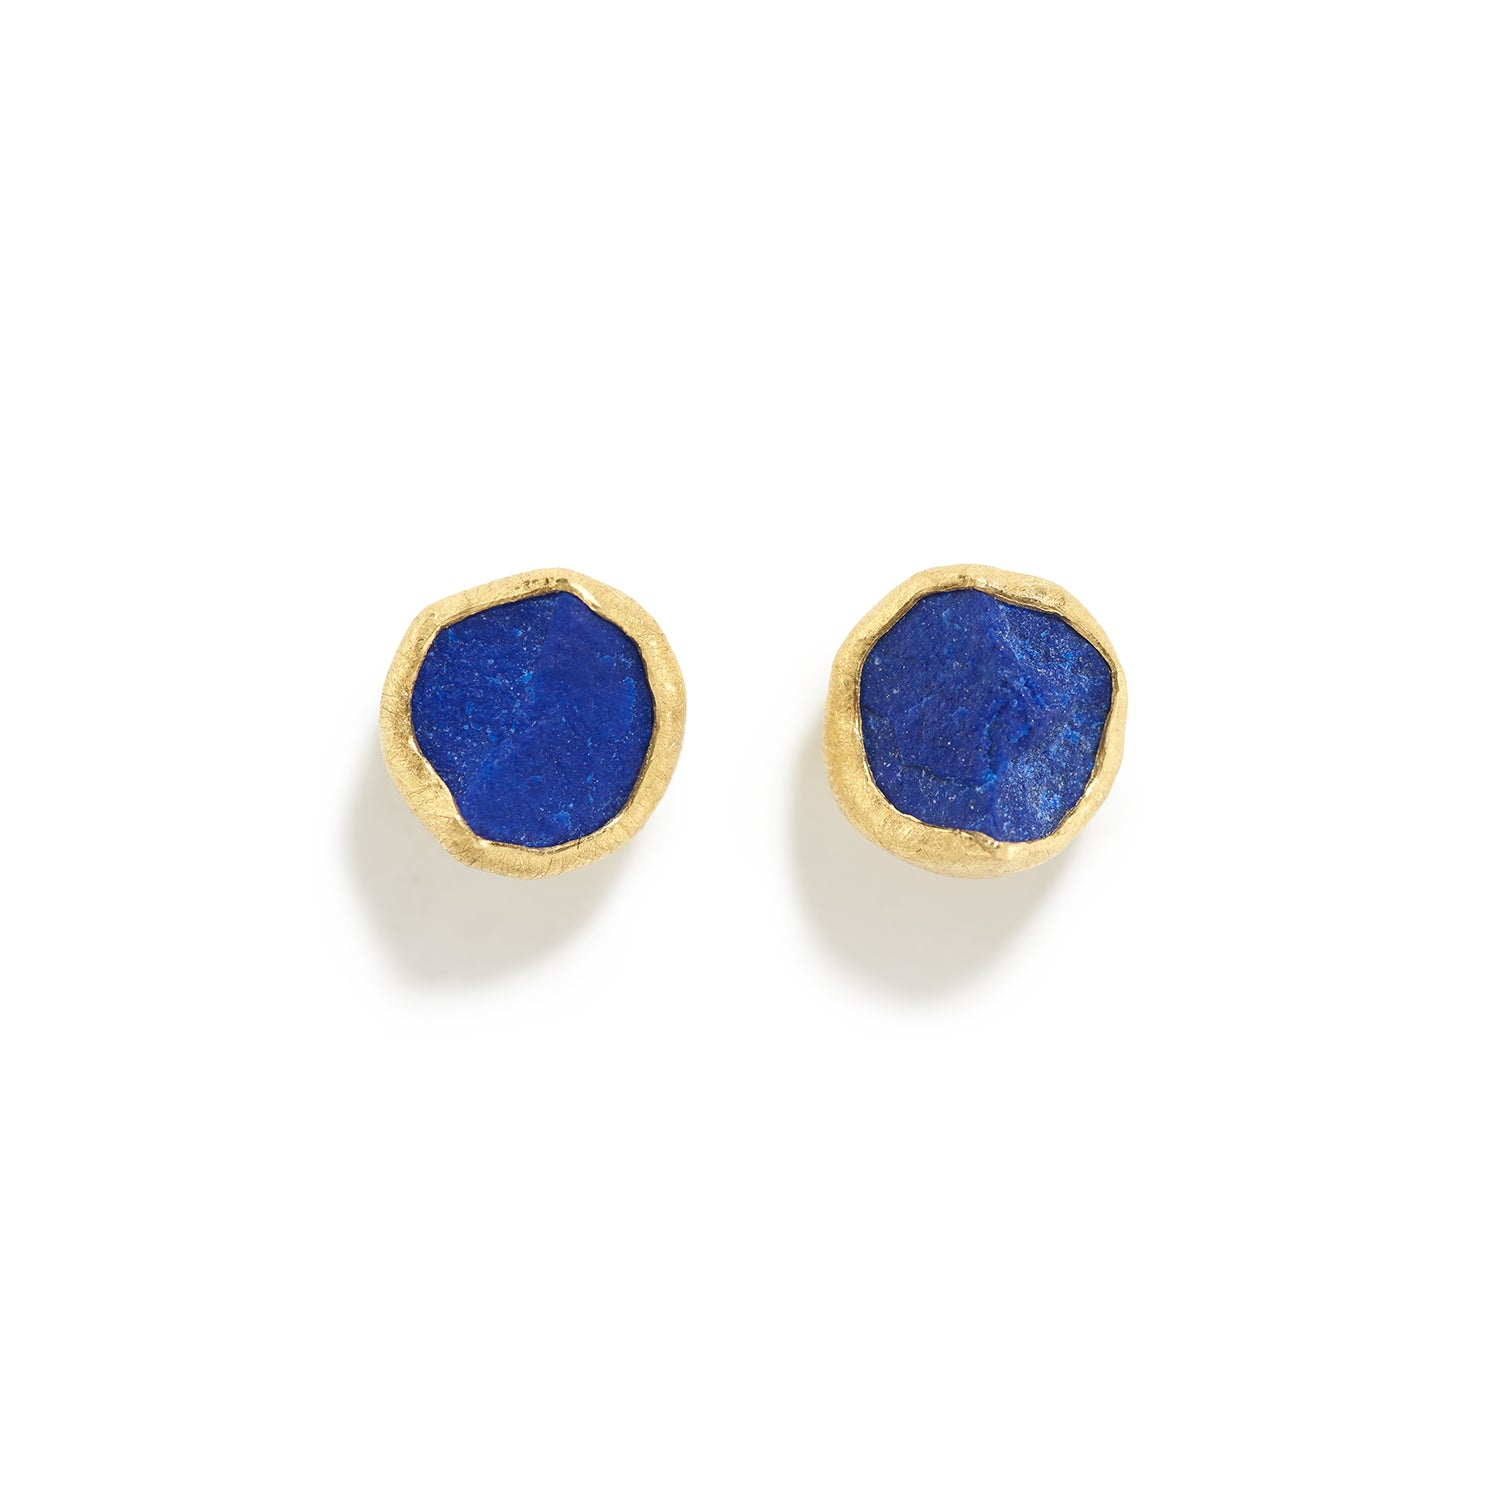 Round Rough Lapis Lazuli Stud Earrings